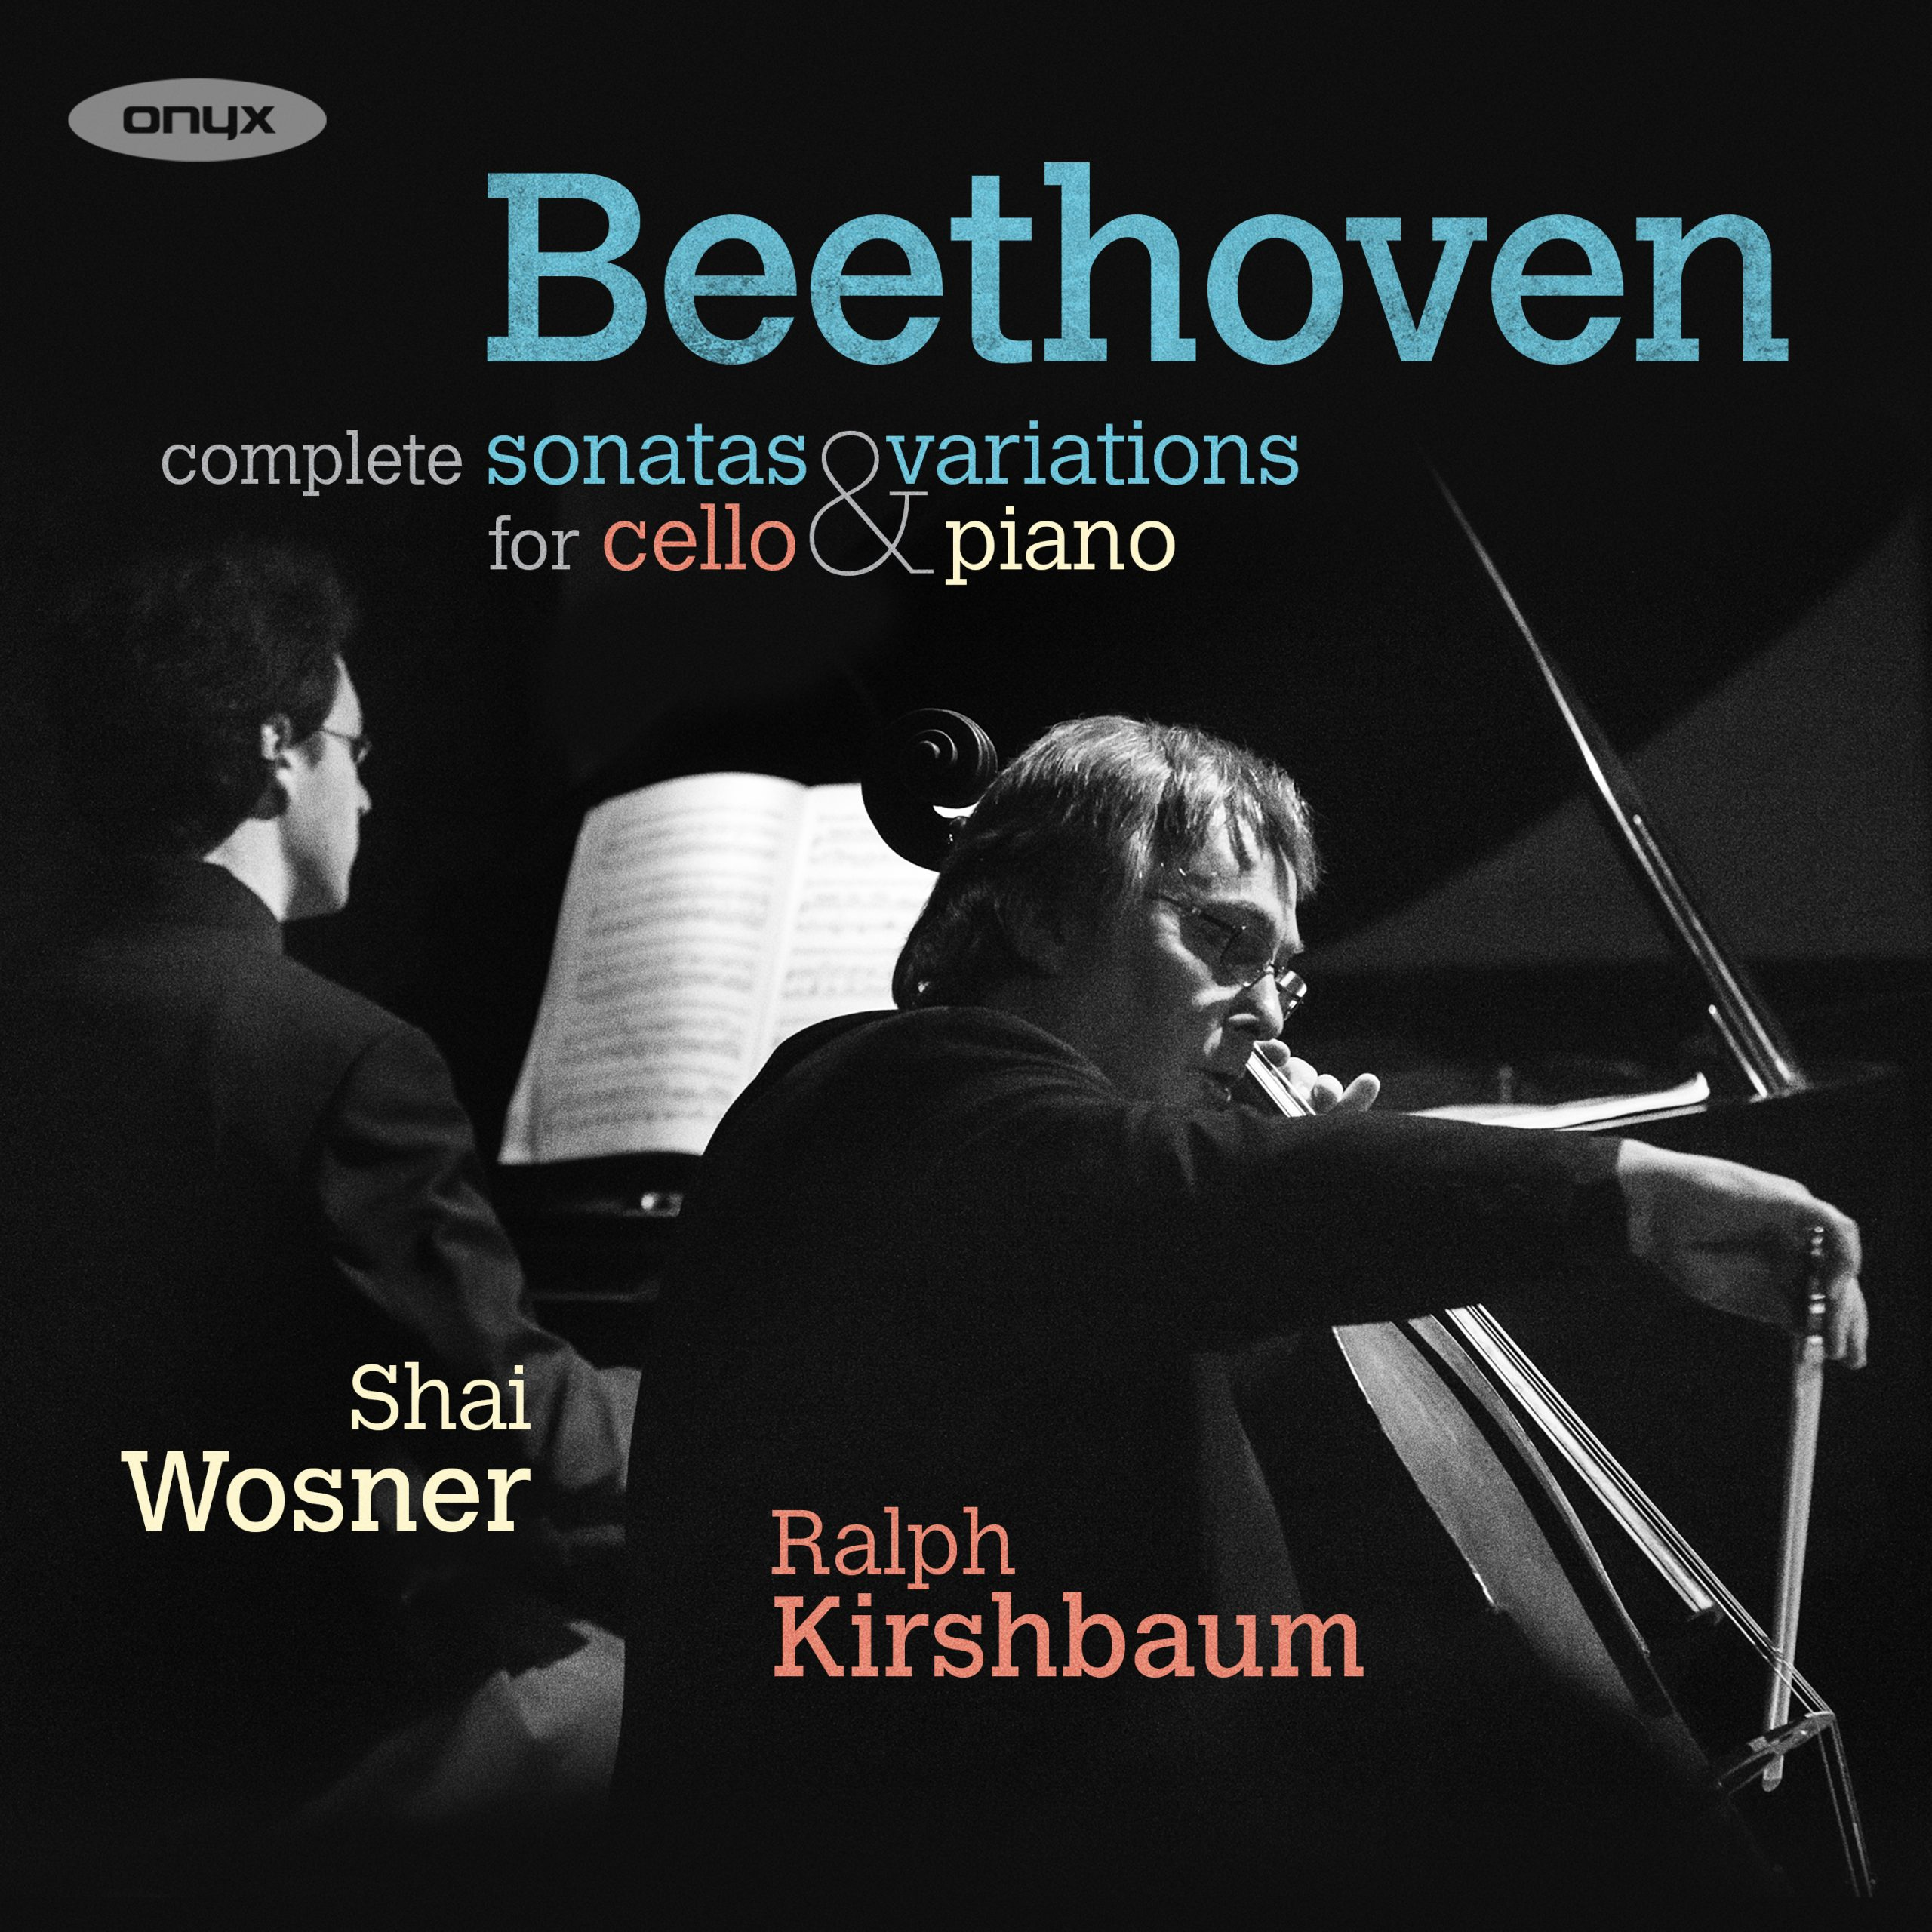 Beethoven: Complete Cello Sonatas & Variations